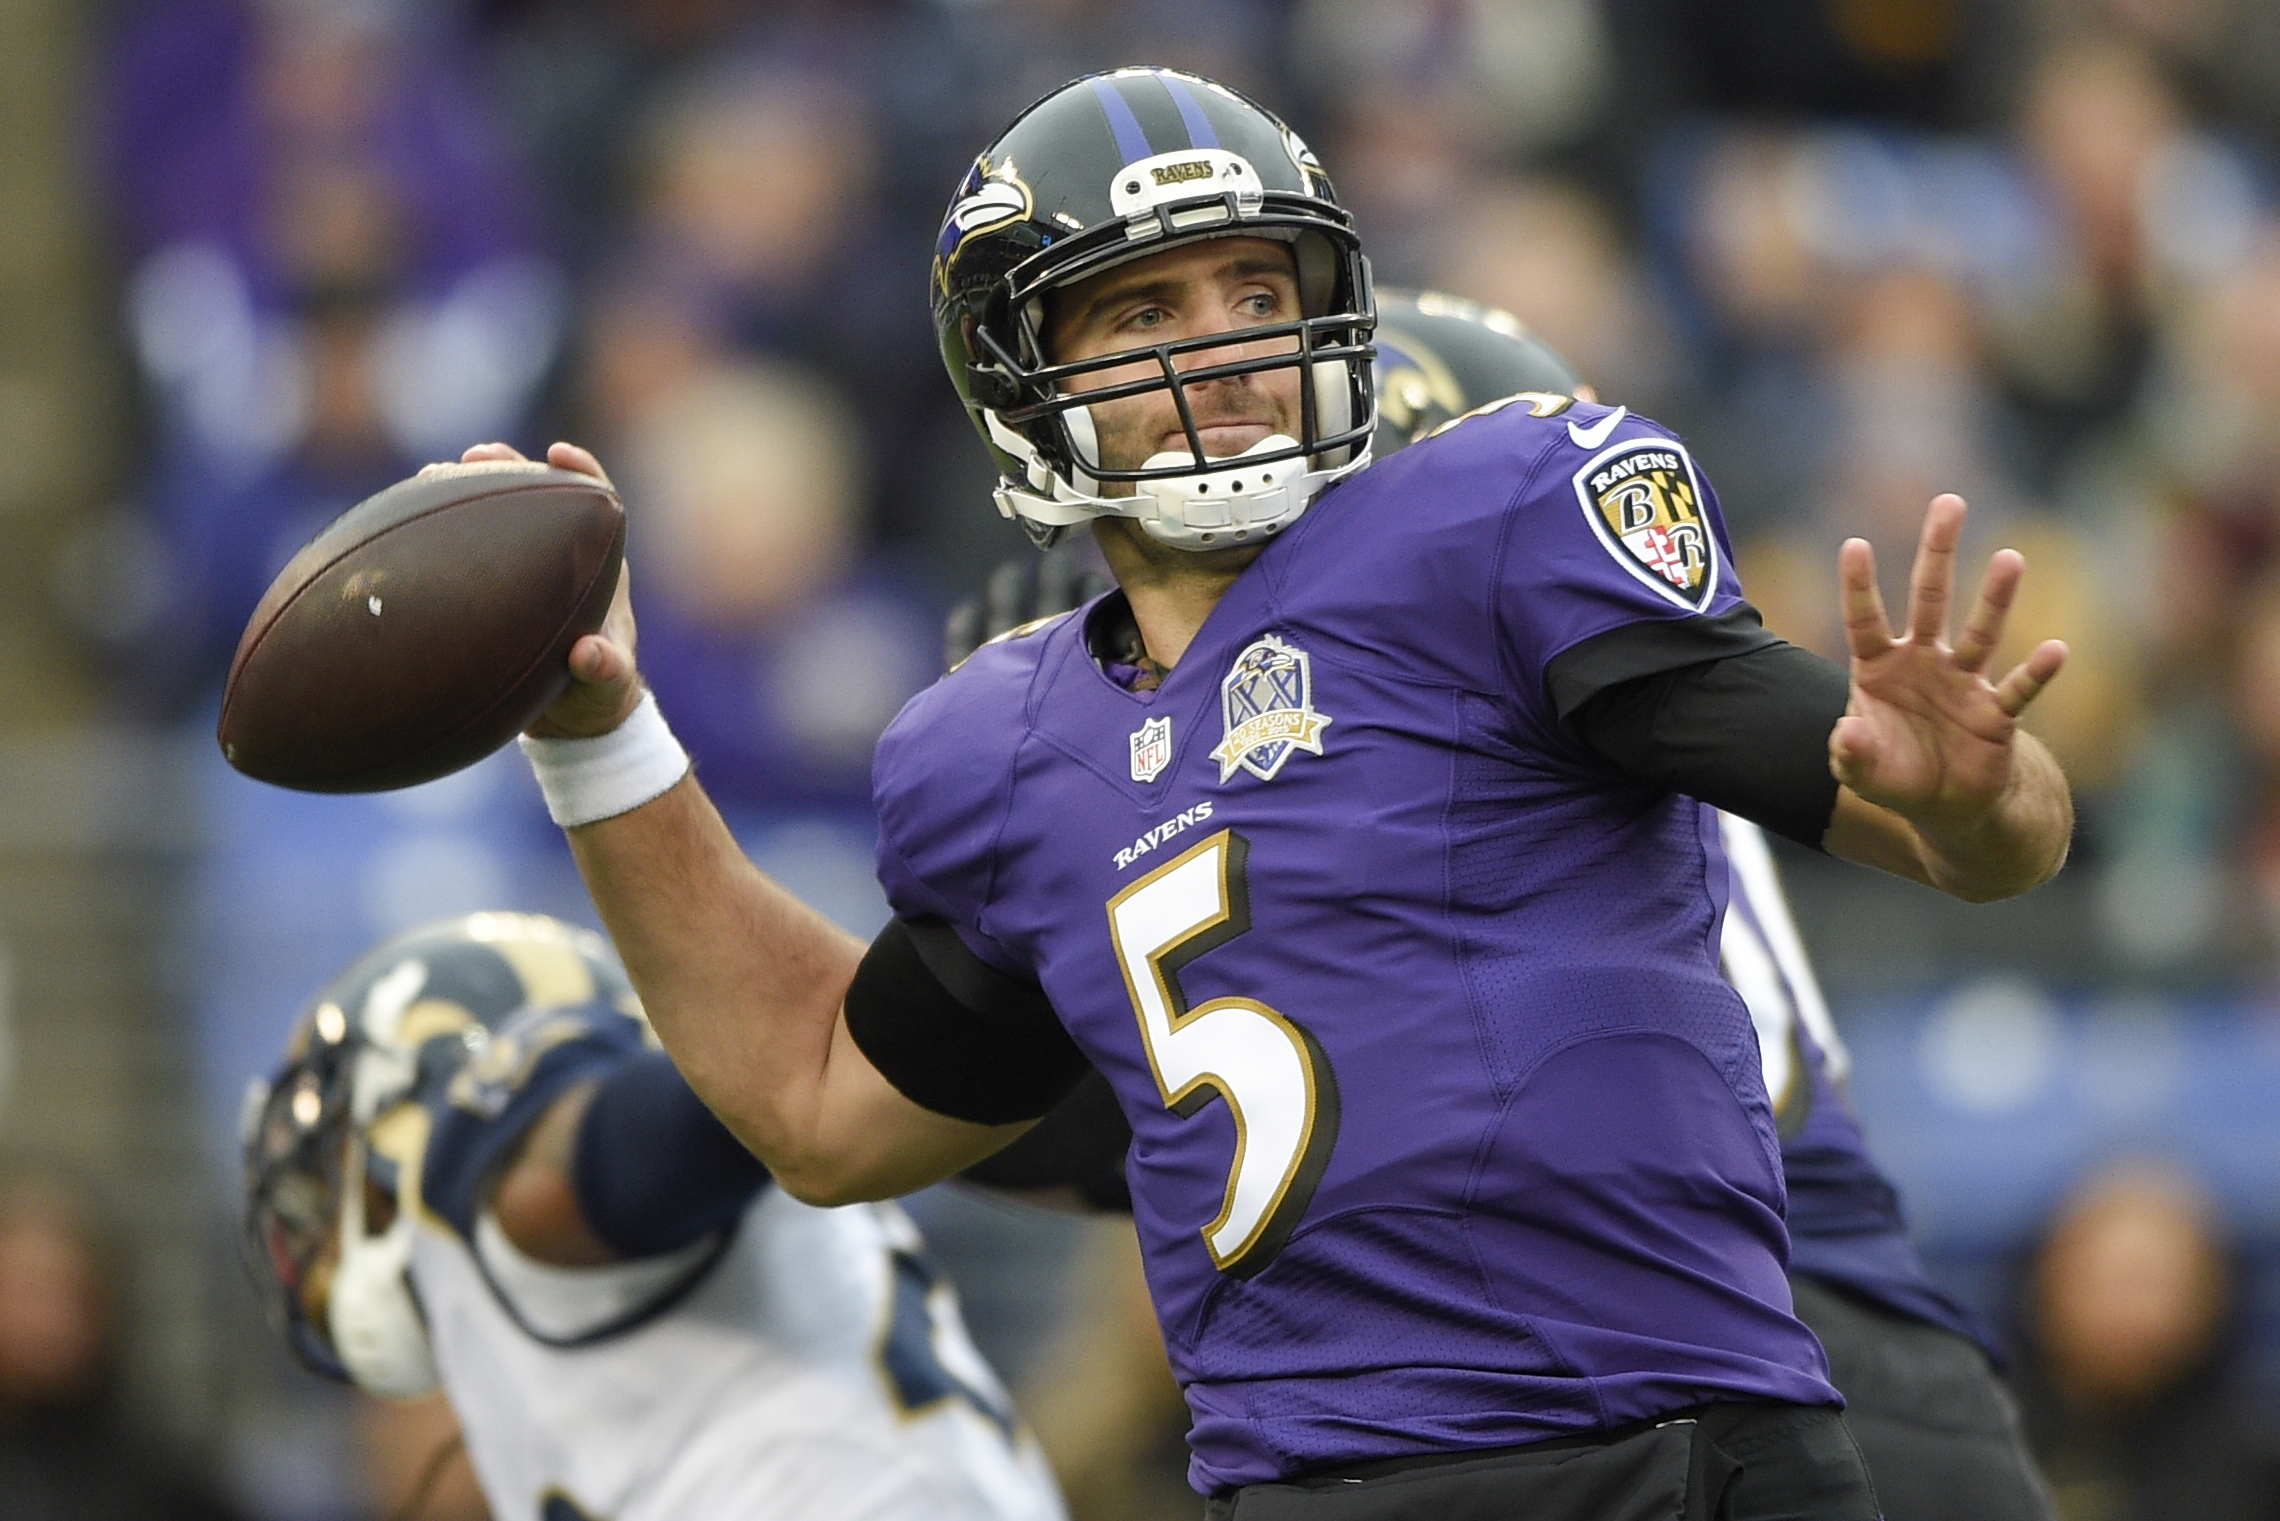 FILE - In this Nov. 22, 2015, file photo, Baltimore Ravens quarterback Joe Flacco passes the ball during the second half of an NFL football game against the St. Louis Rams, in Baltimore. Flacco, Justin Forsett and Terrell Suggs are among several members o